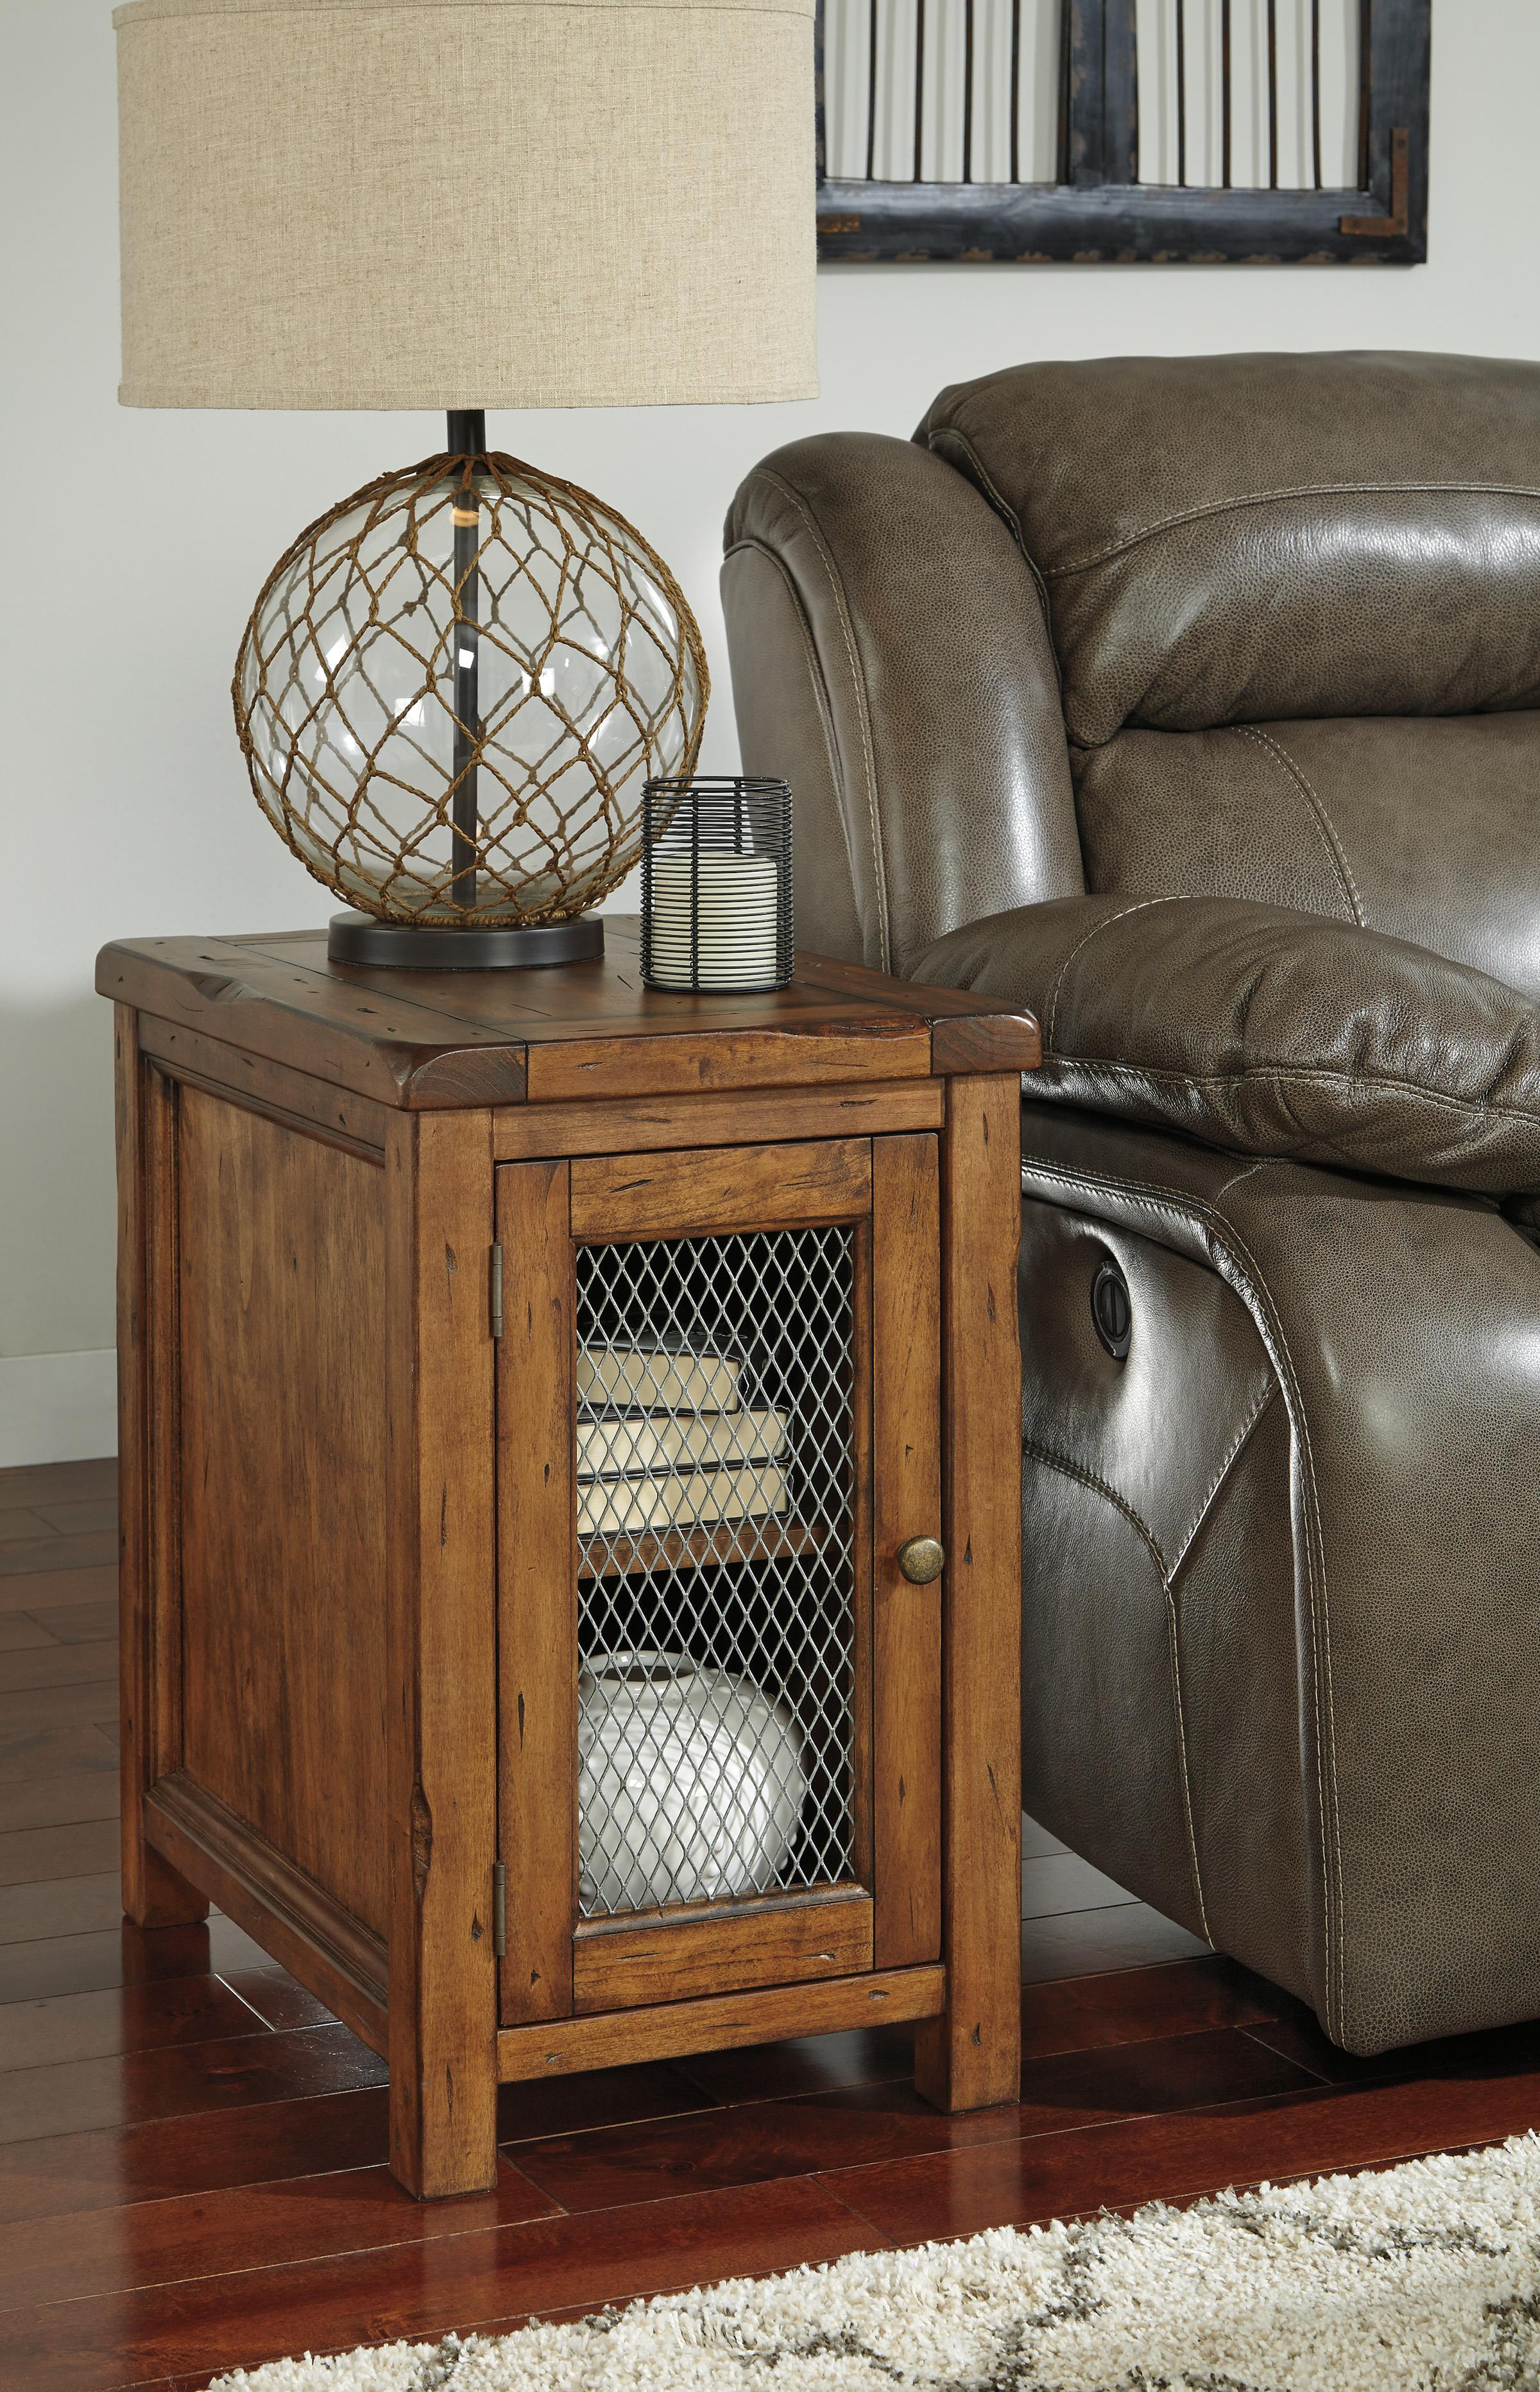 Rustic Chair Side End Table With Wire Mesh Door